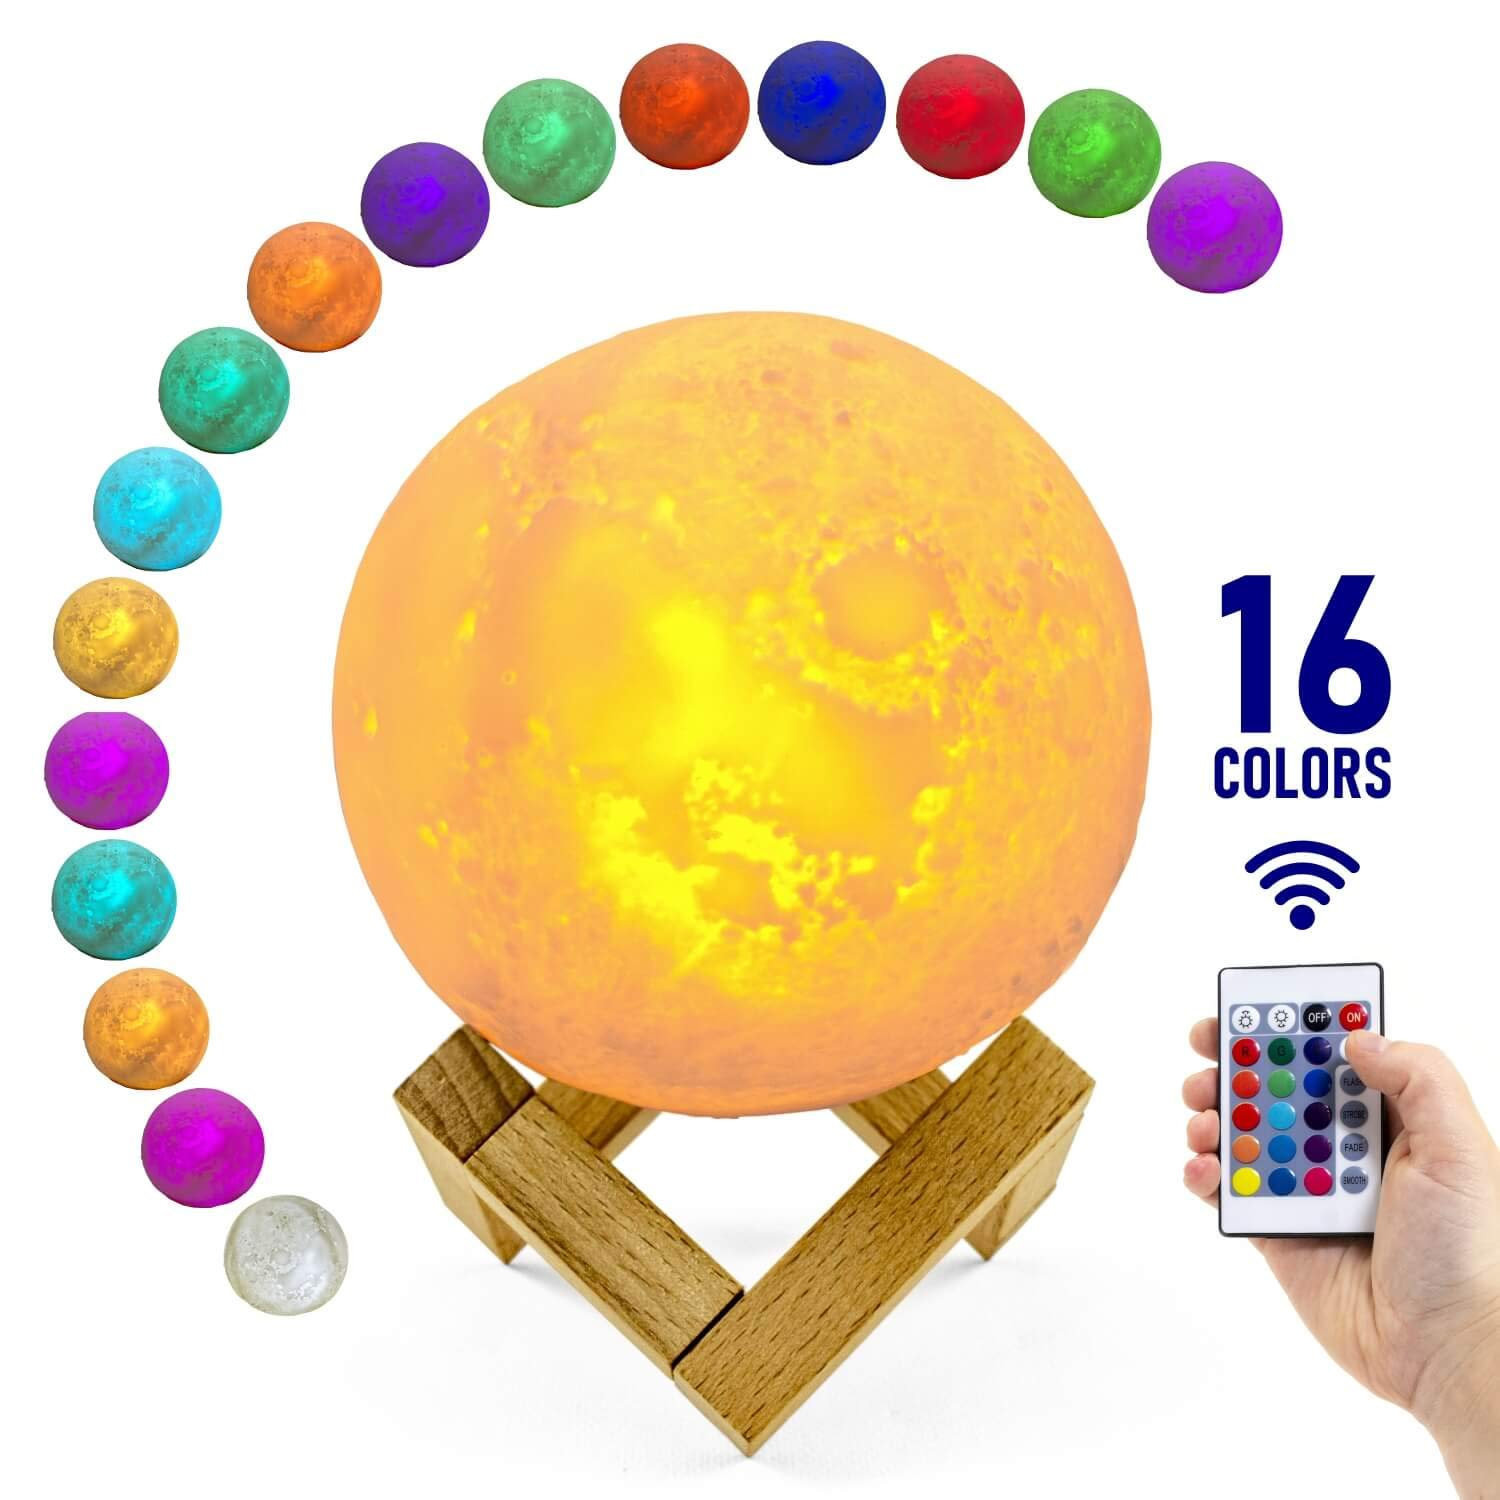 Large 3D Moon Lamp with Stand, 5.9' - Realistic Moon Light with 16 Beautiful Colors Changing, Remote, Touch Control, USB, Eco Friendly, Perfect for Home Decor, Cool Lovely Gift (5.9 inch) 5.9 - Realistic Moon Light with 16 Beautiful Colors Changing Gobblen